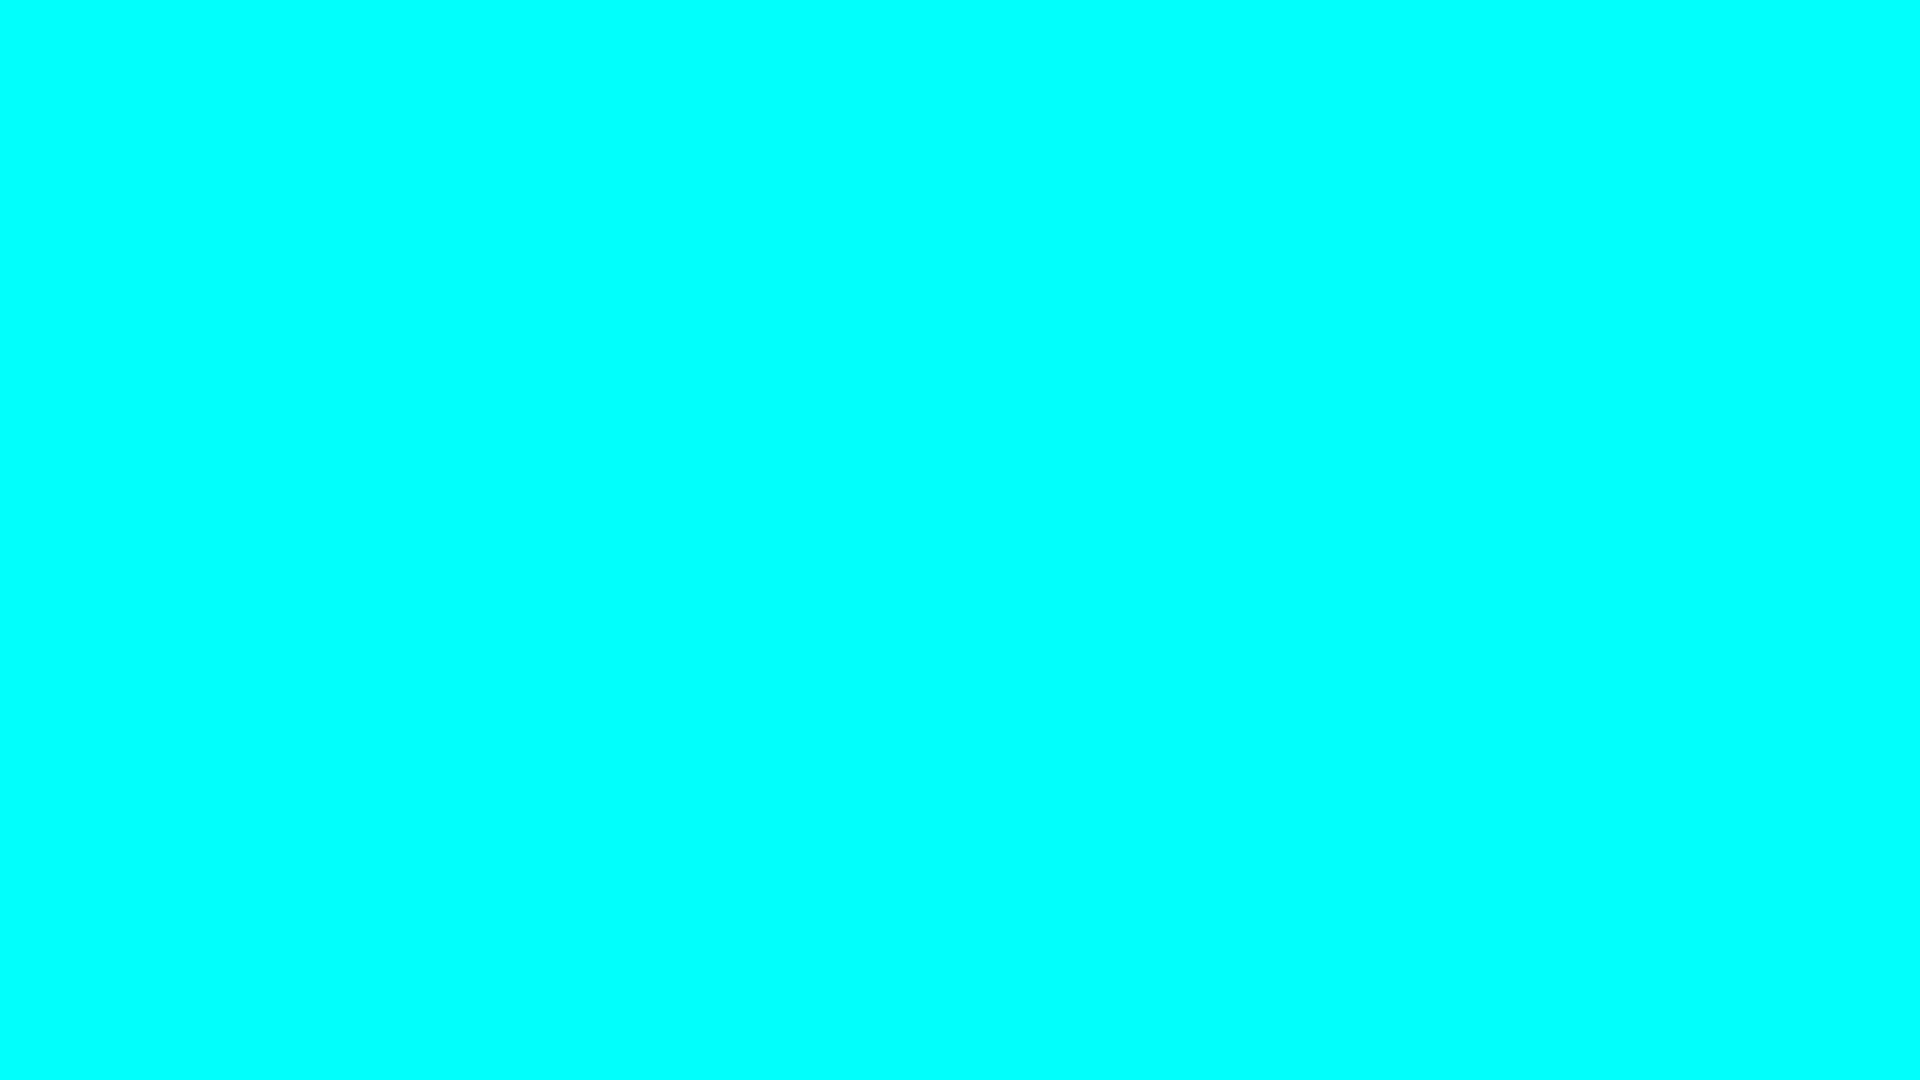 1920x1080 Aqua Solid Color Background